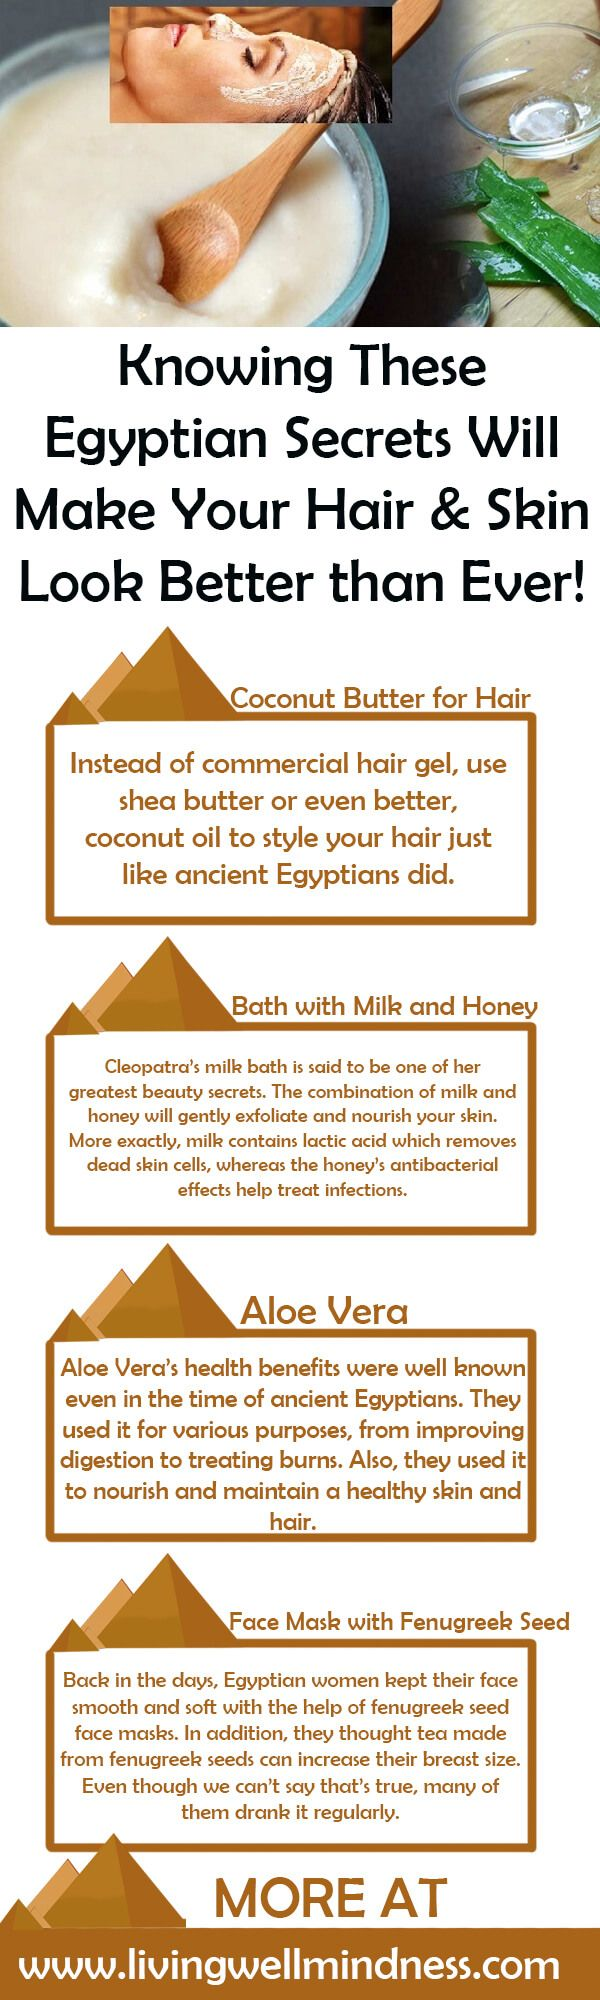 Knowing These Egyptian Secrets Will Make Your Hair & Skin Look Better than Ever! - Living Wellmindness